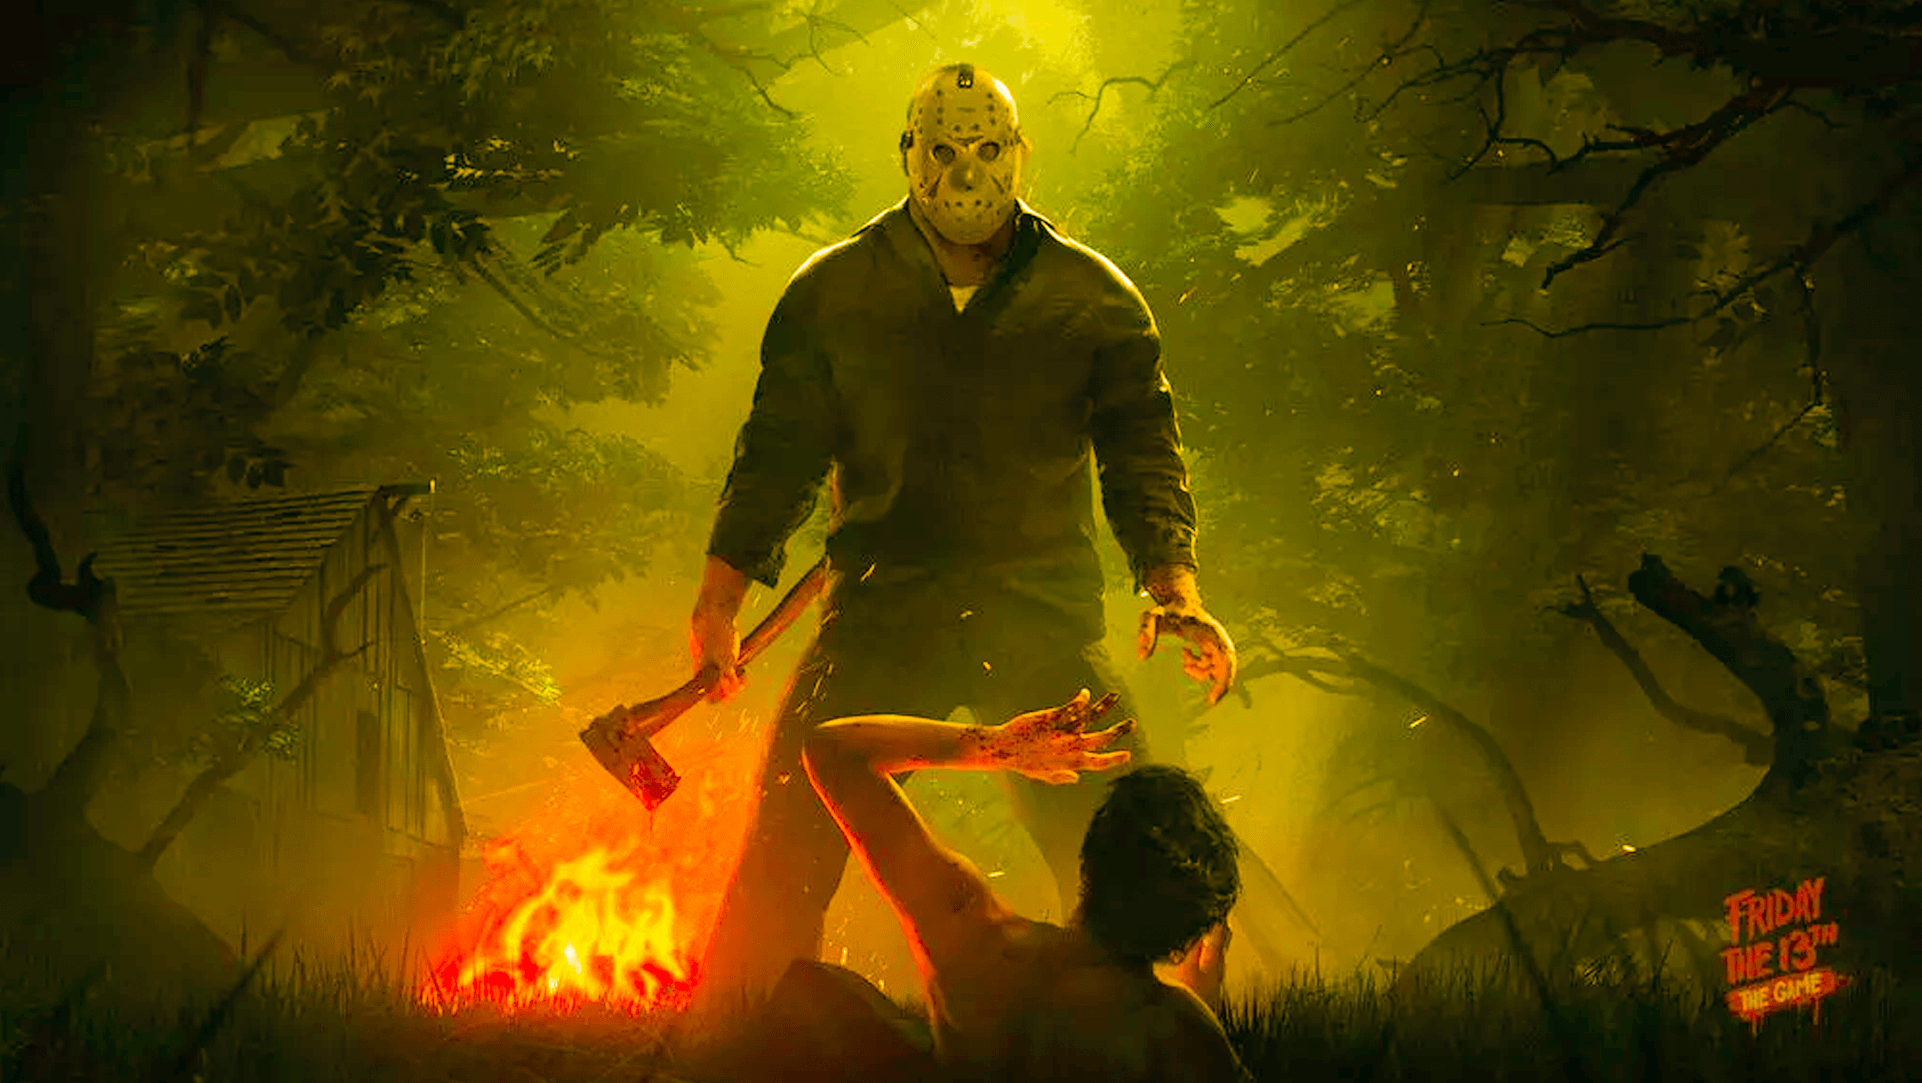 Friday the 13th New Wallpaper